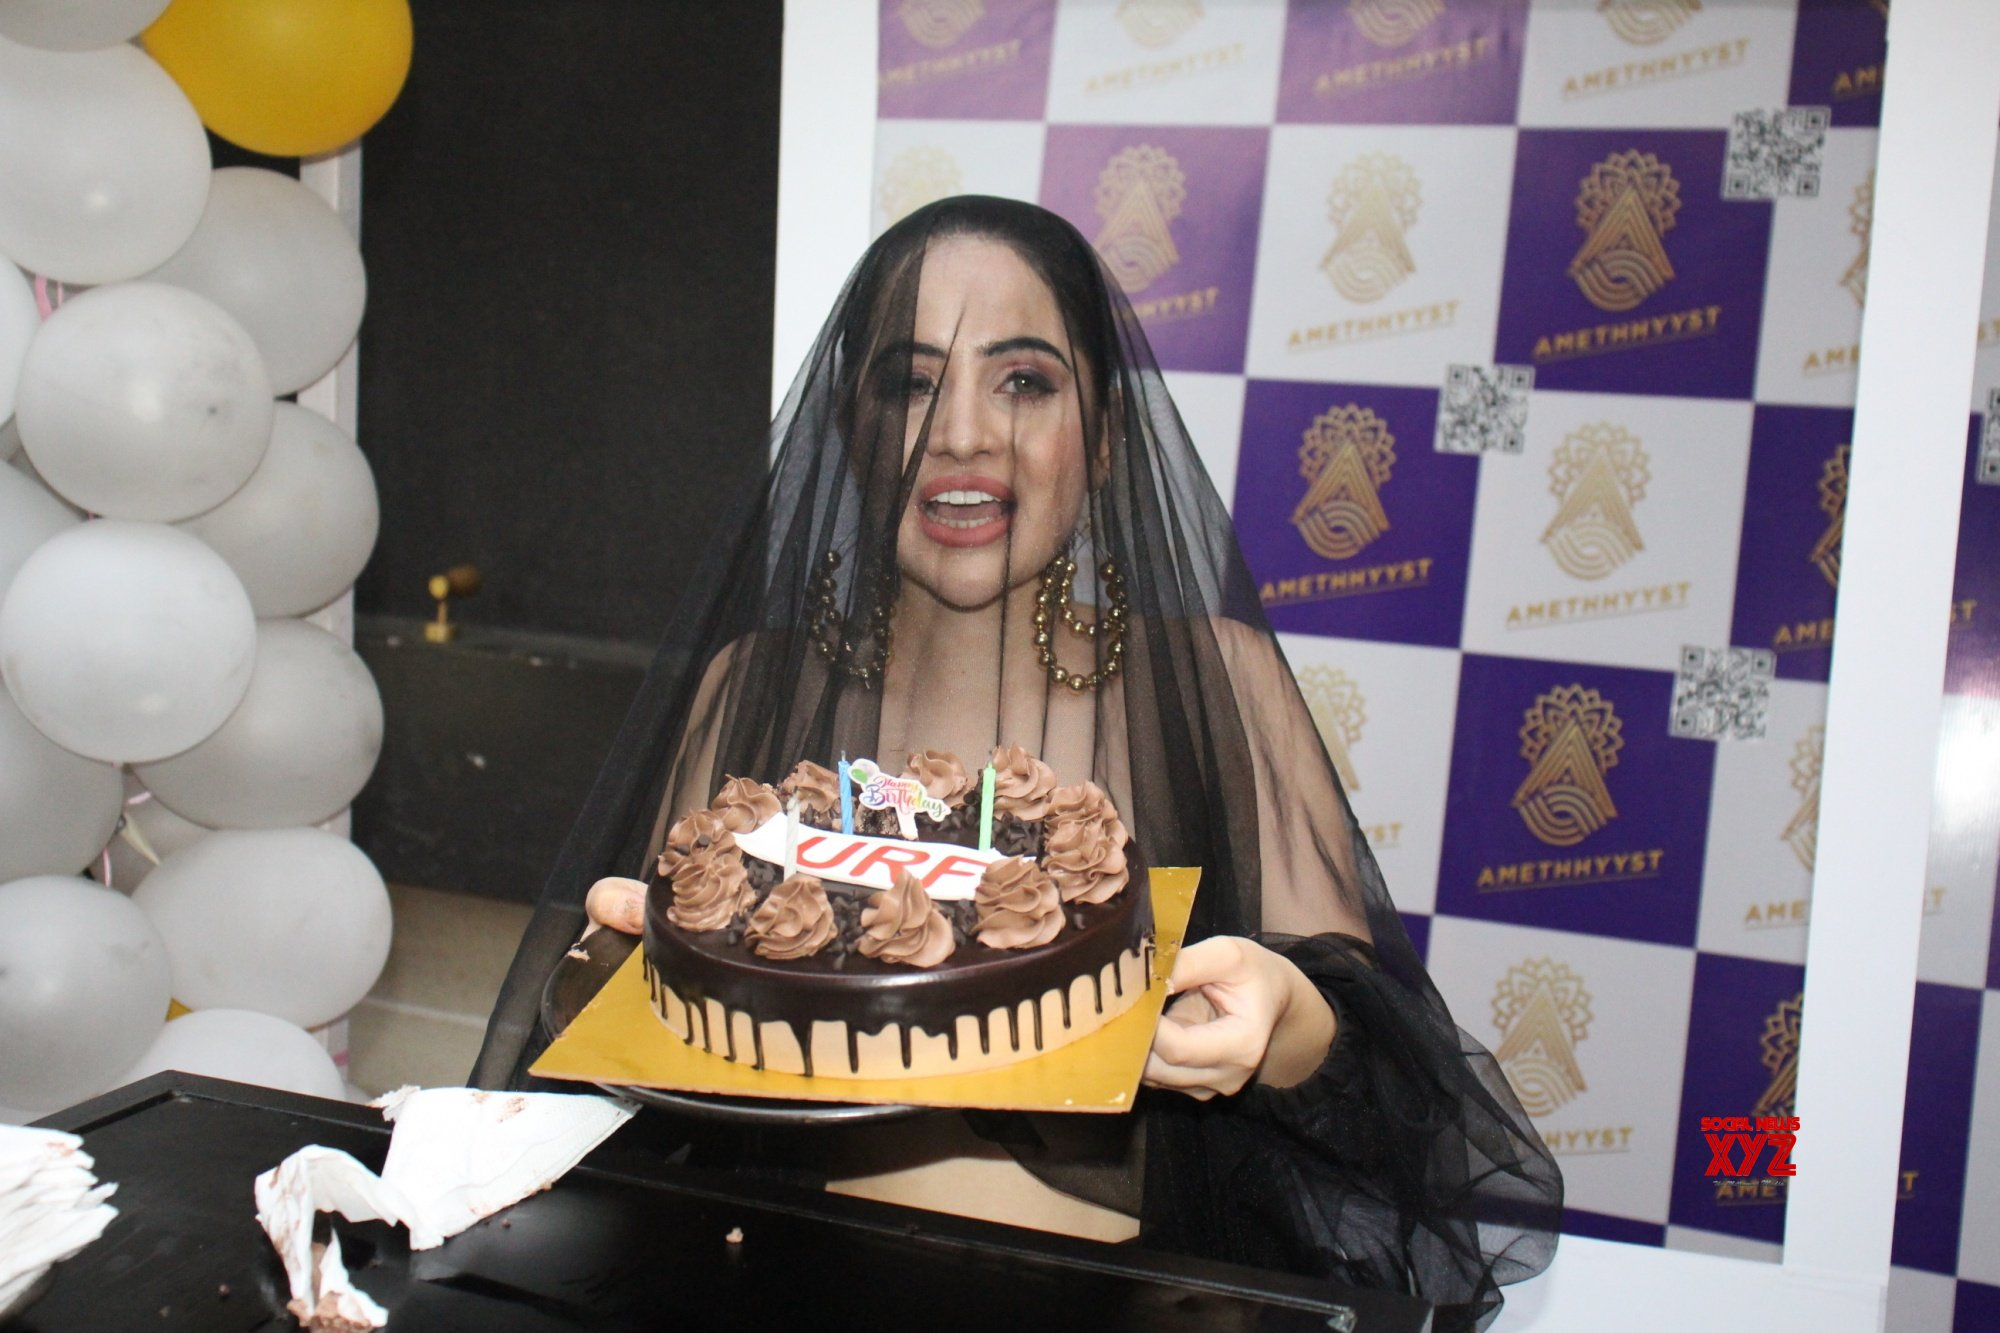 Bigg Boss OTT Fame Urfi Javed Spotted In Andheri For Her Pre Birthday Bash With Her Close Friends - Gallery